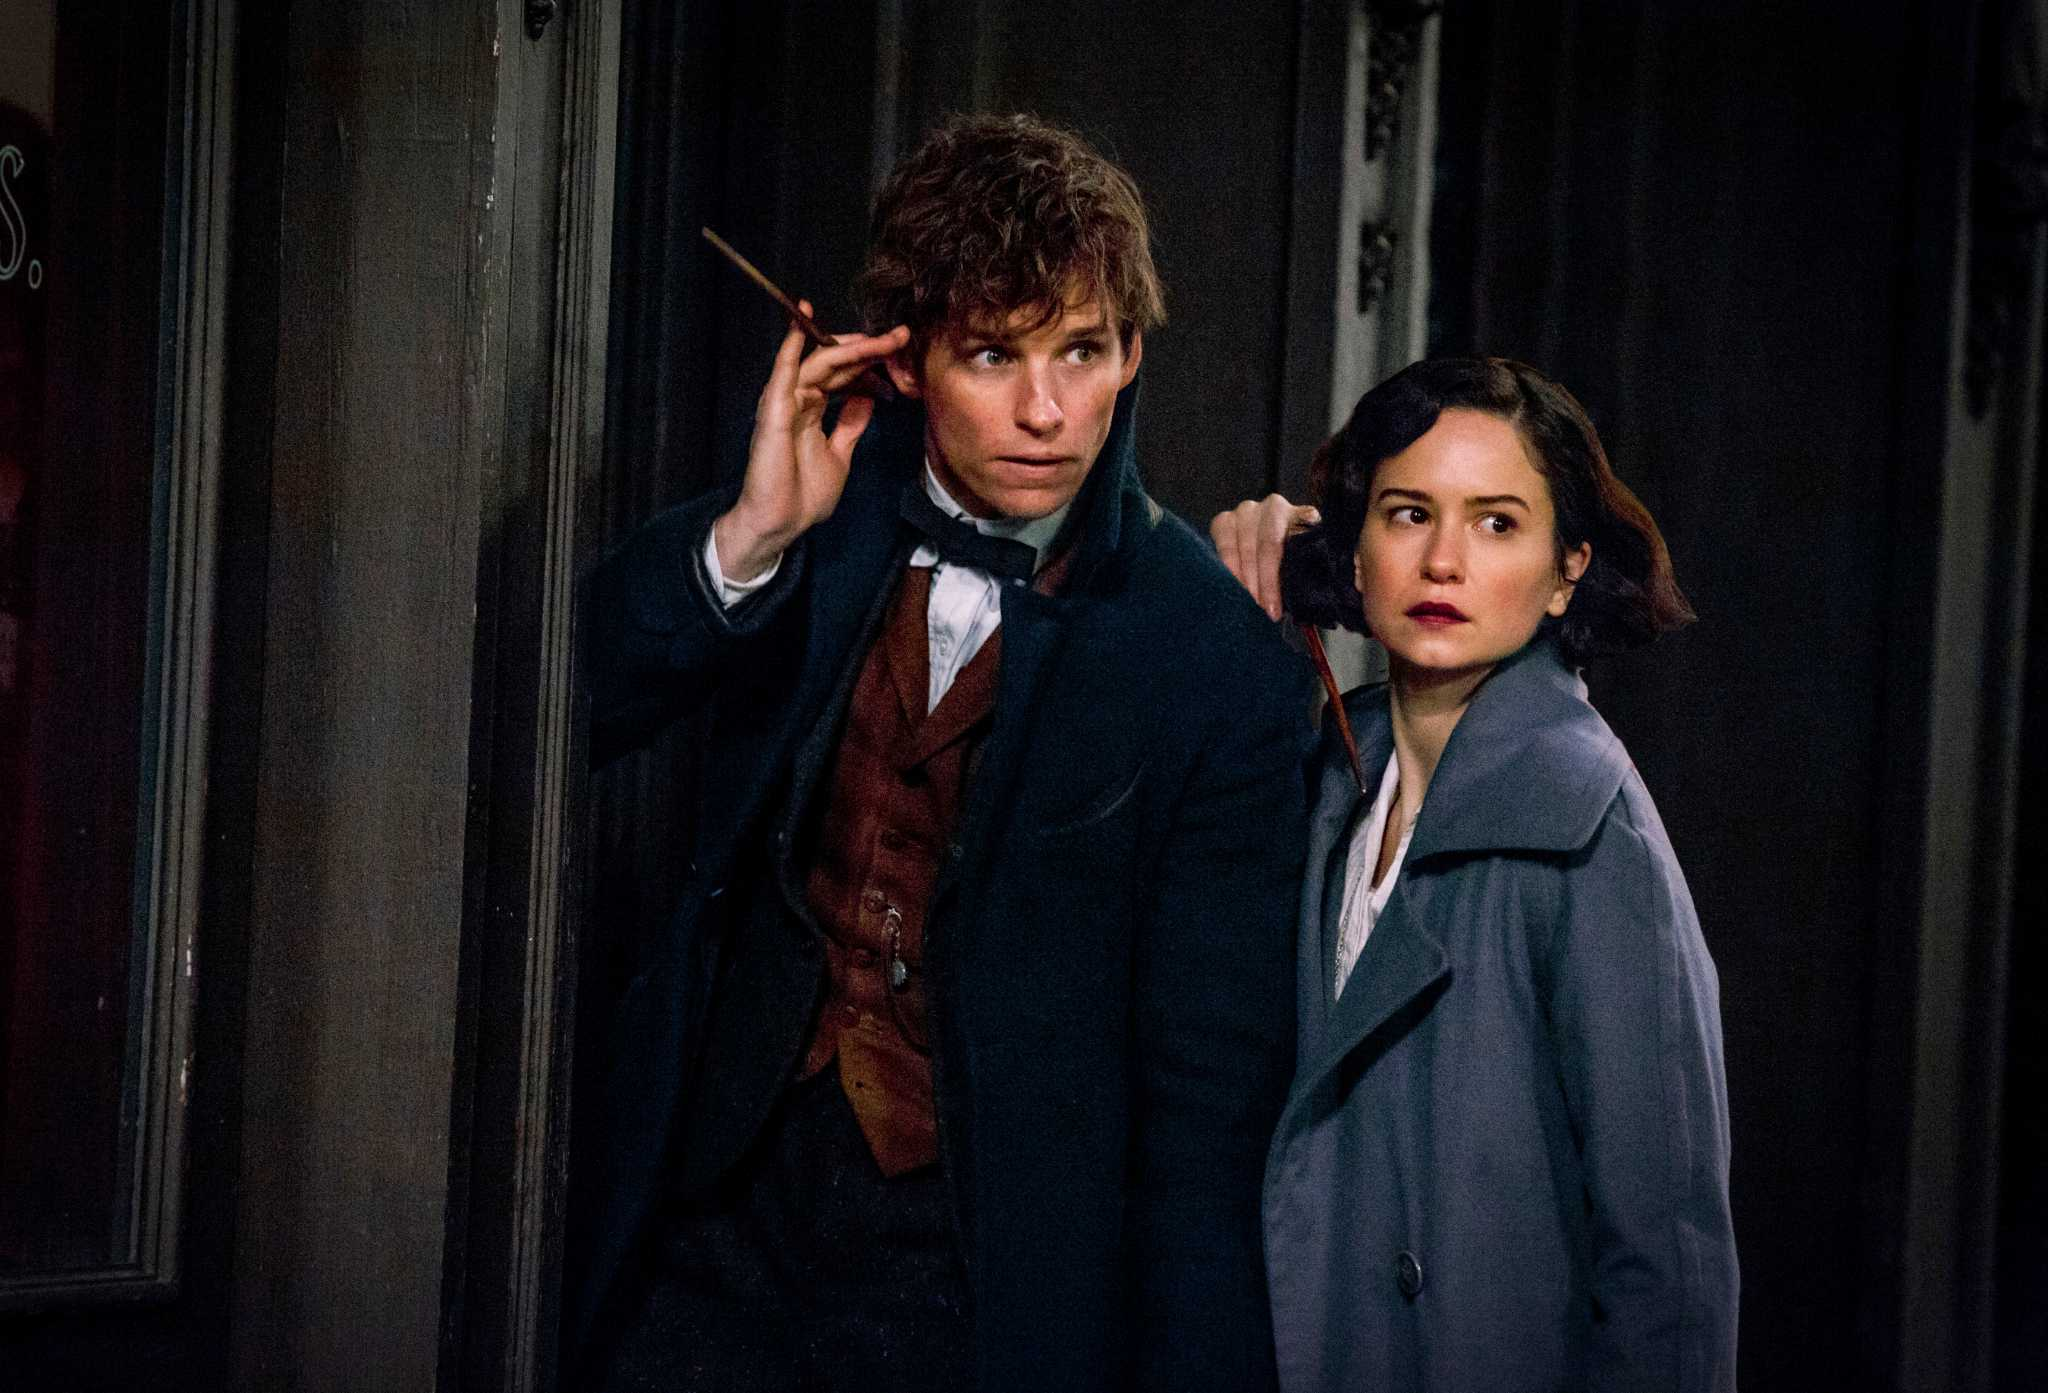 You can see costumes from 'Fantastic Beasts' sequel in Houston